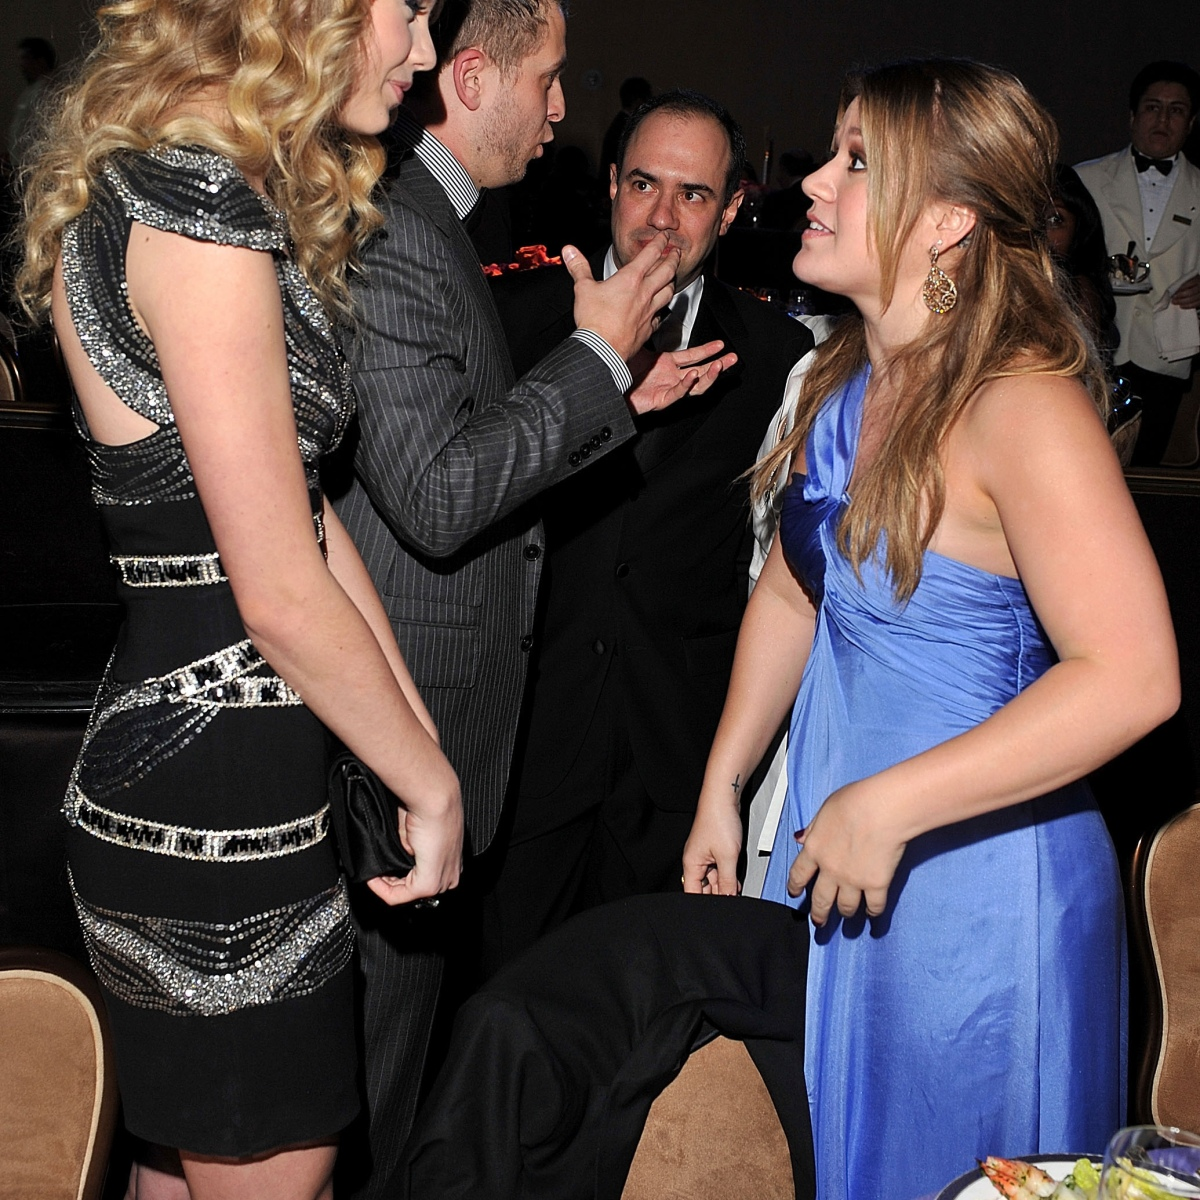 10 Photos of Taylor Swift Towering Over Other Stars - J-14